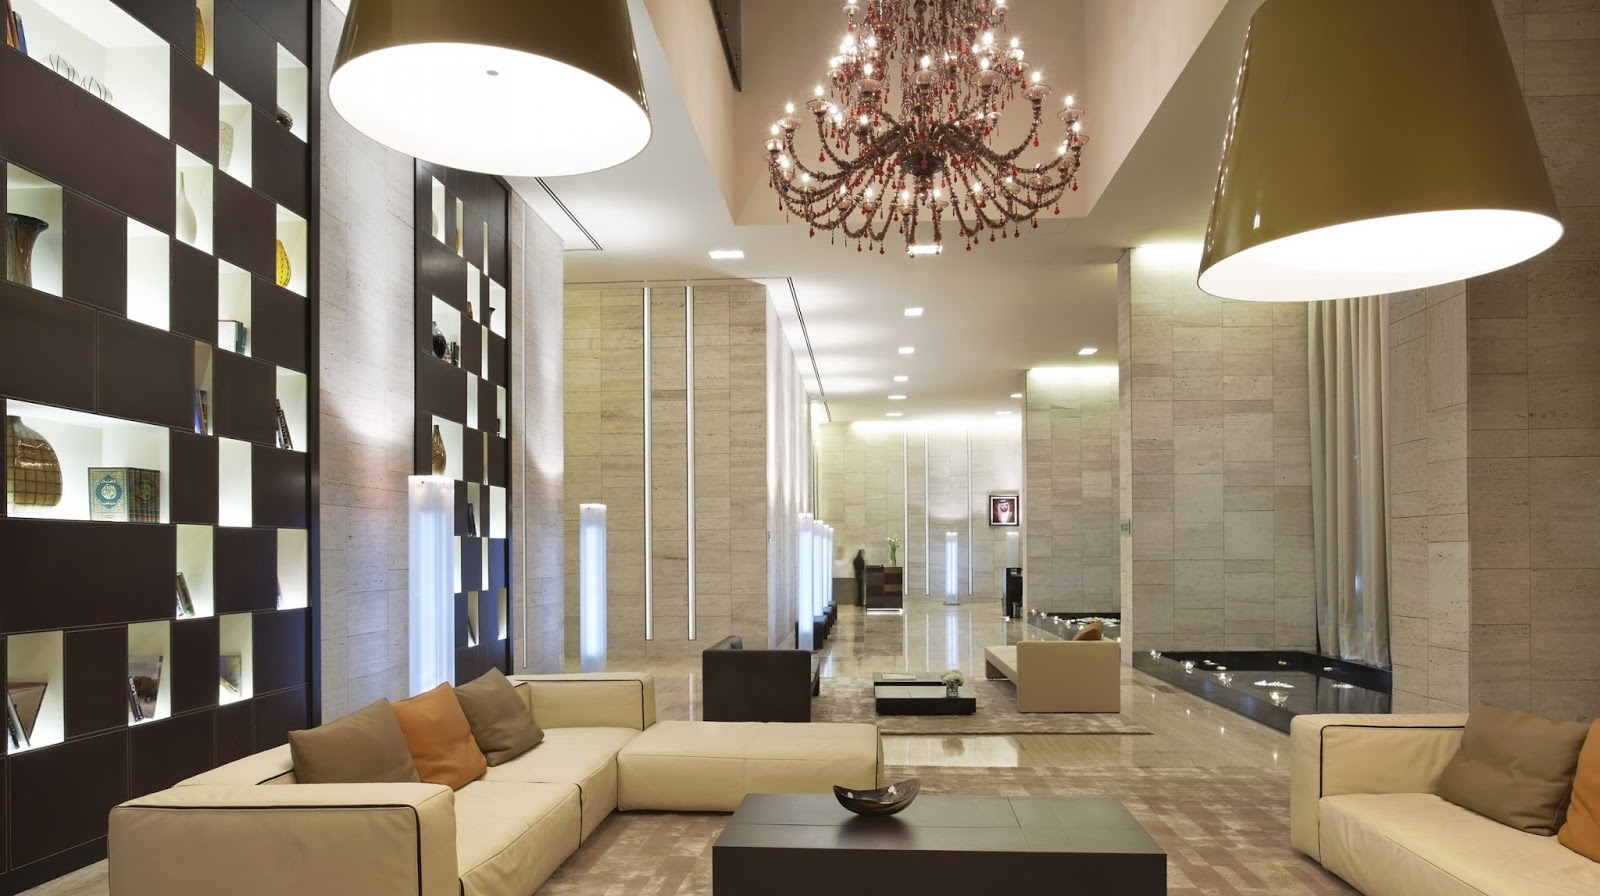 Best interior design companies and interior designers in dubai - Design interior ...